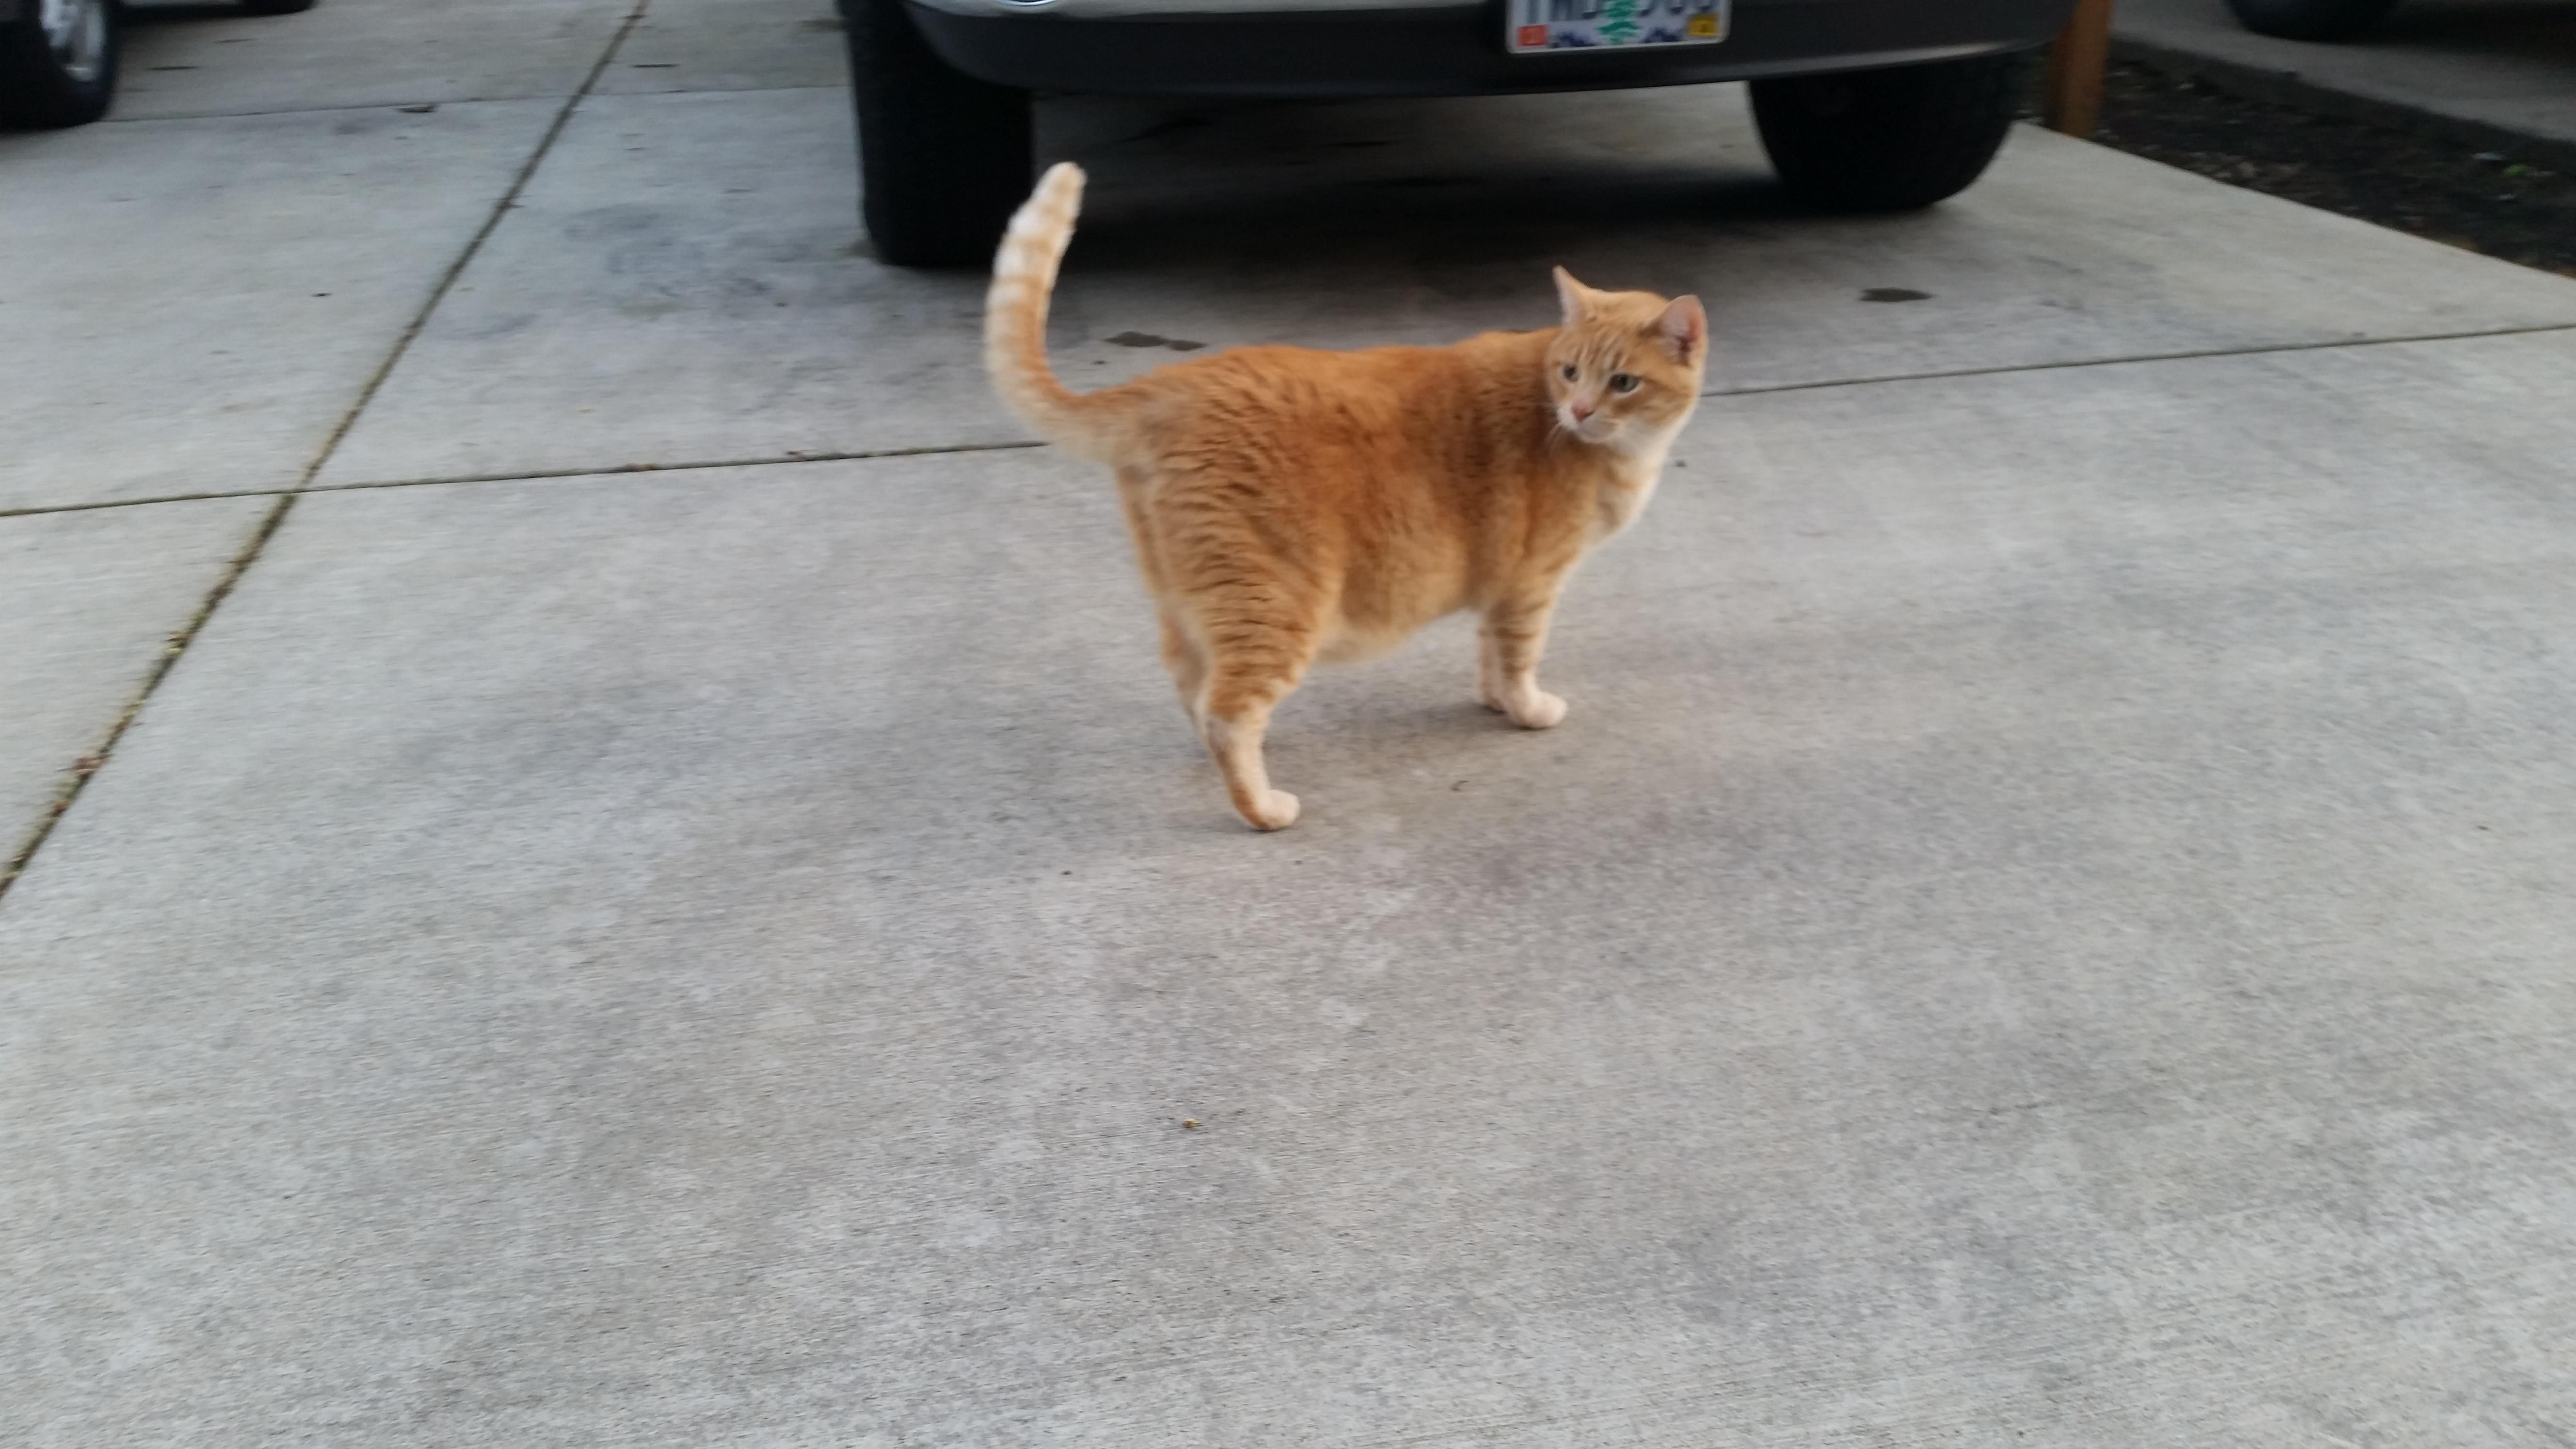 My neighbor's cat is orange weighs 17 pounds and is named Ivanewski. I am obsessed with him.